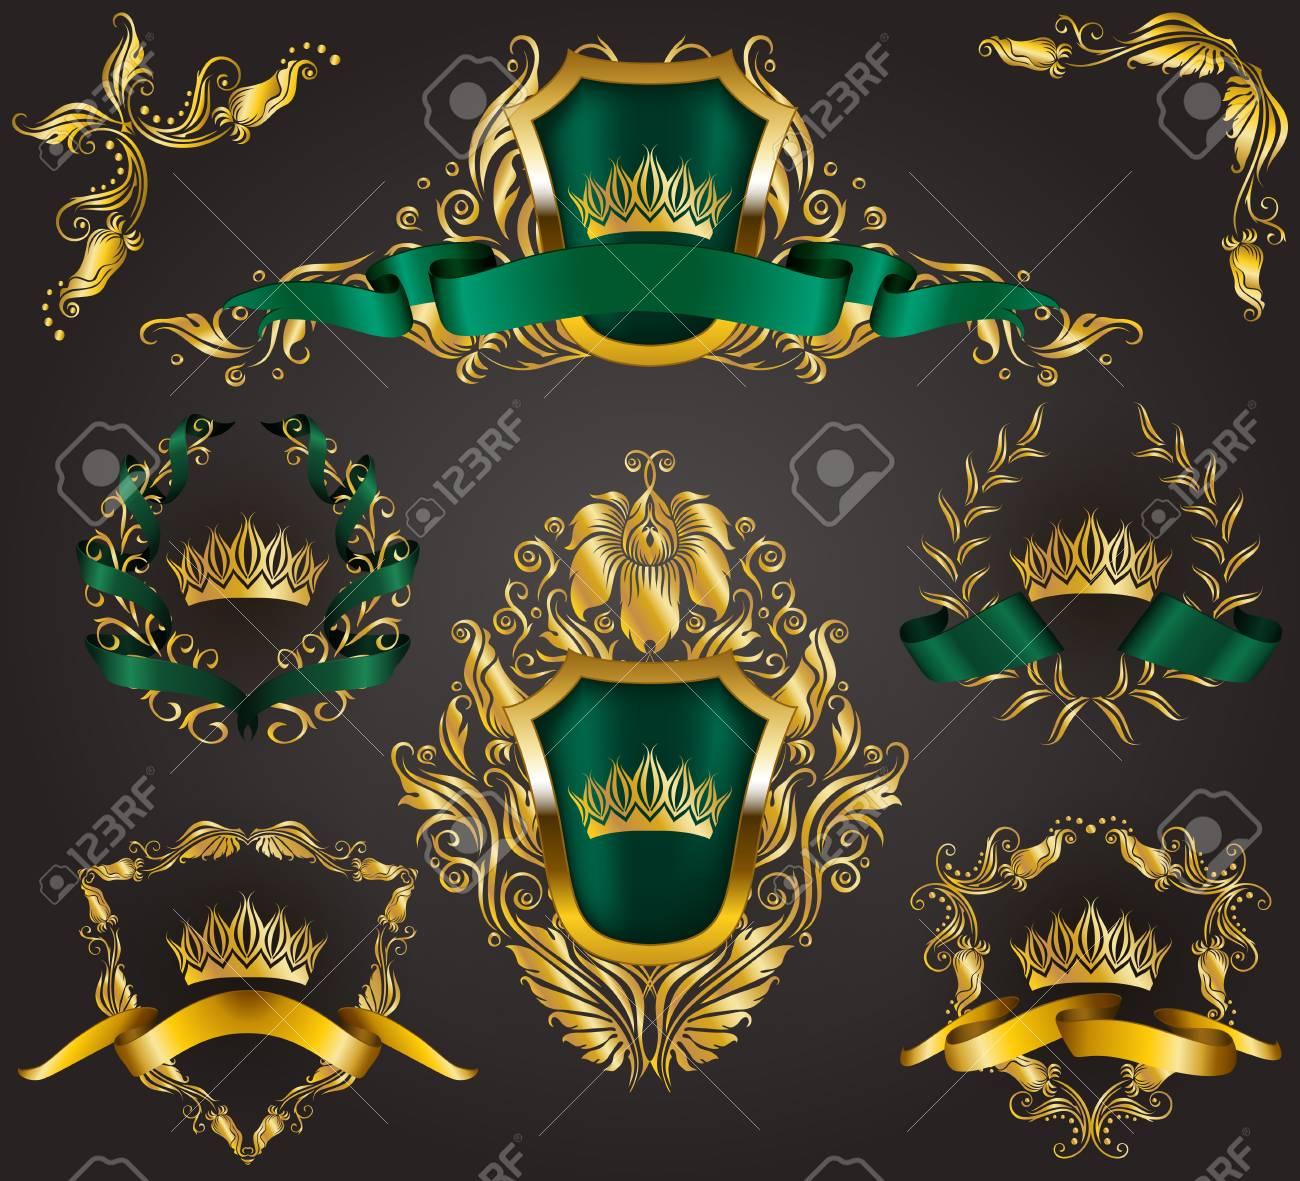 252e9226837a Set Of Golden Royal Shields With Floral Elements